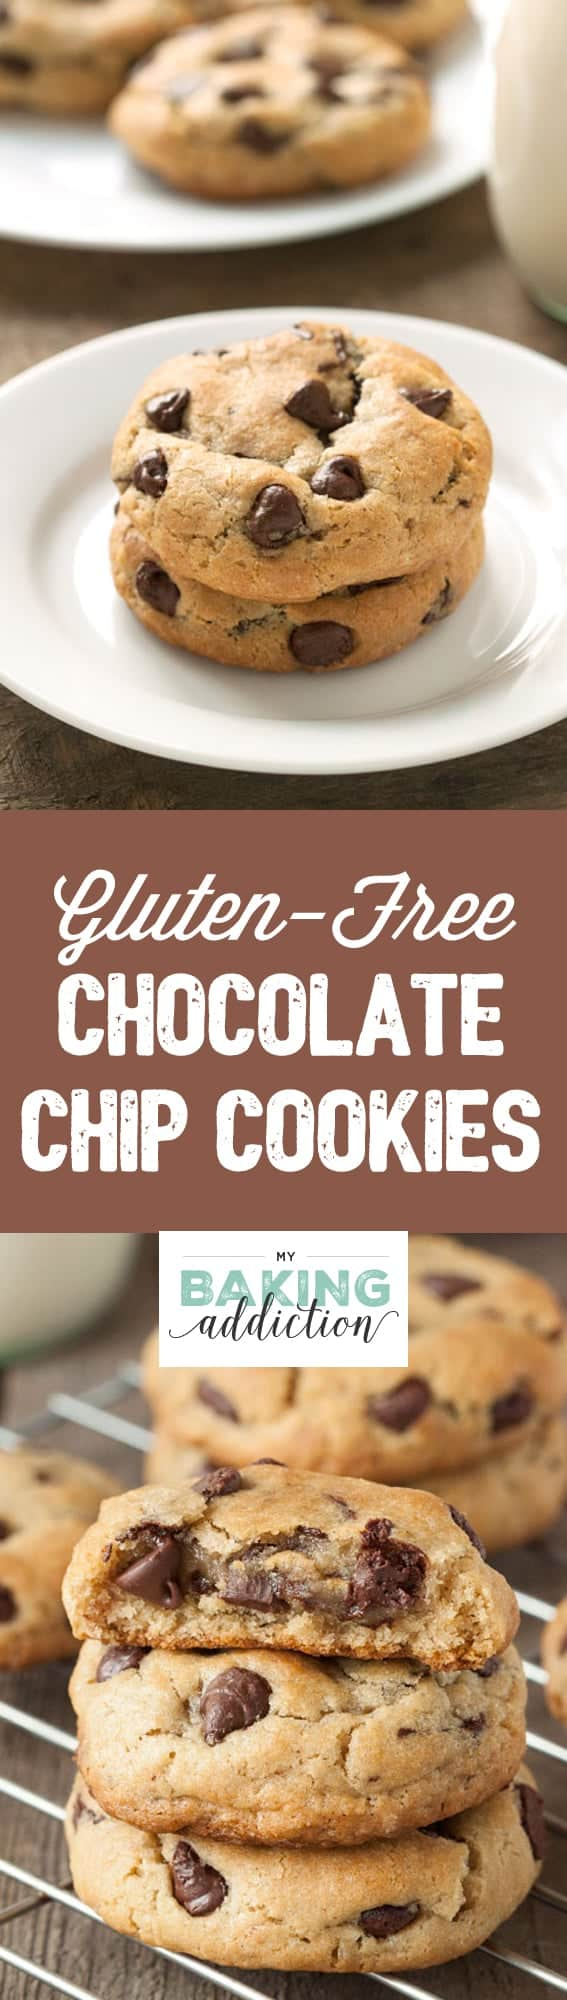 These gluten-free chocolate chip cookies are amazingly soft and chewy. They're sure to rival your current favorite!